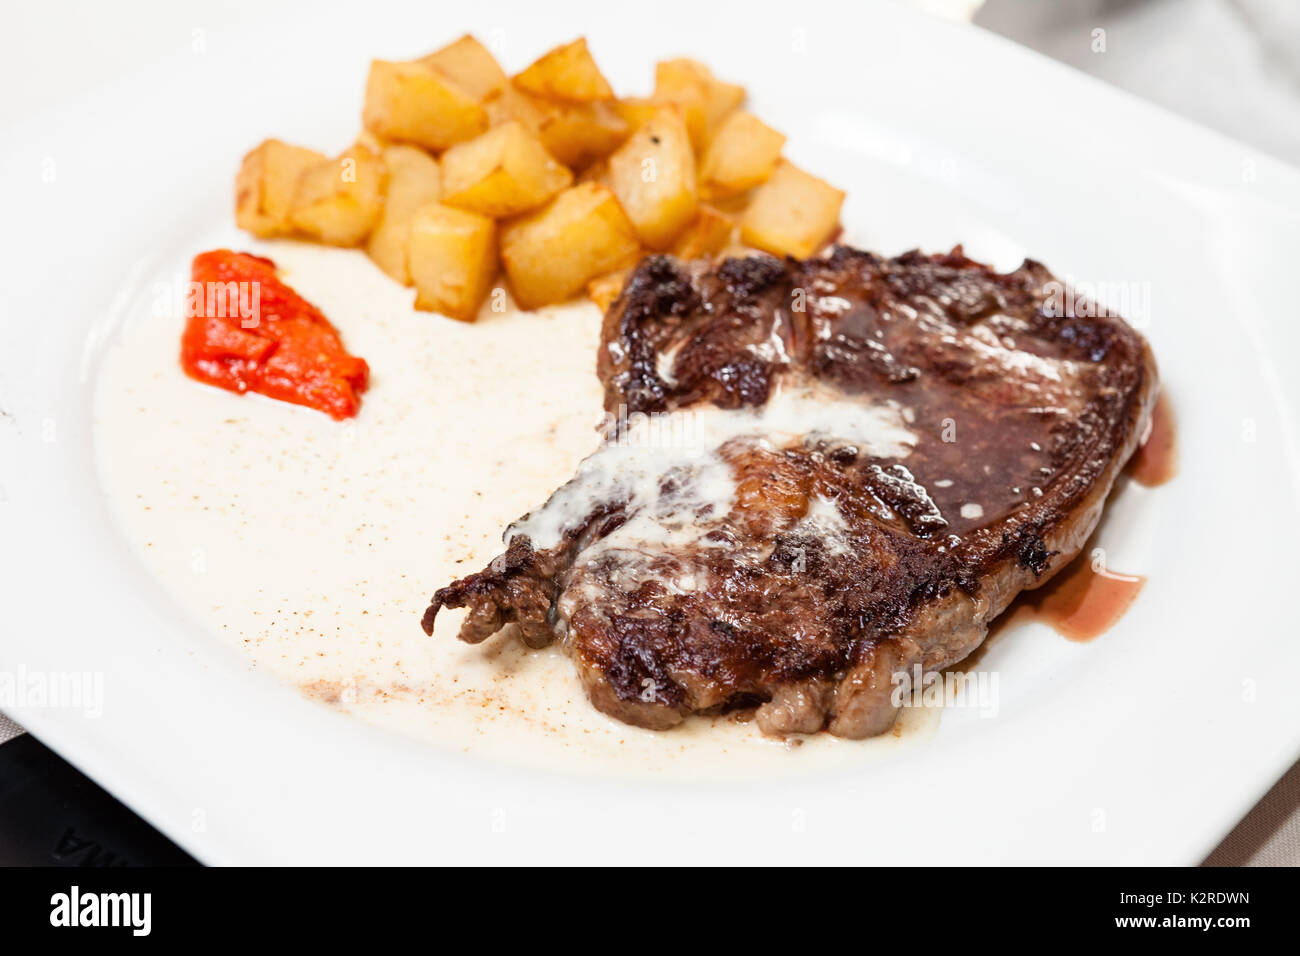 Steak with potatoes - Stock Image